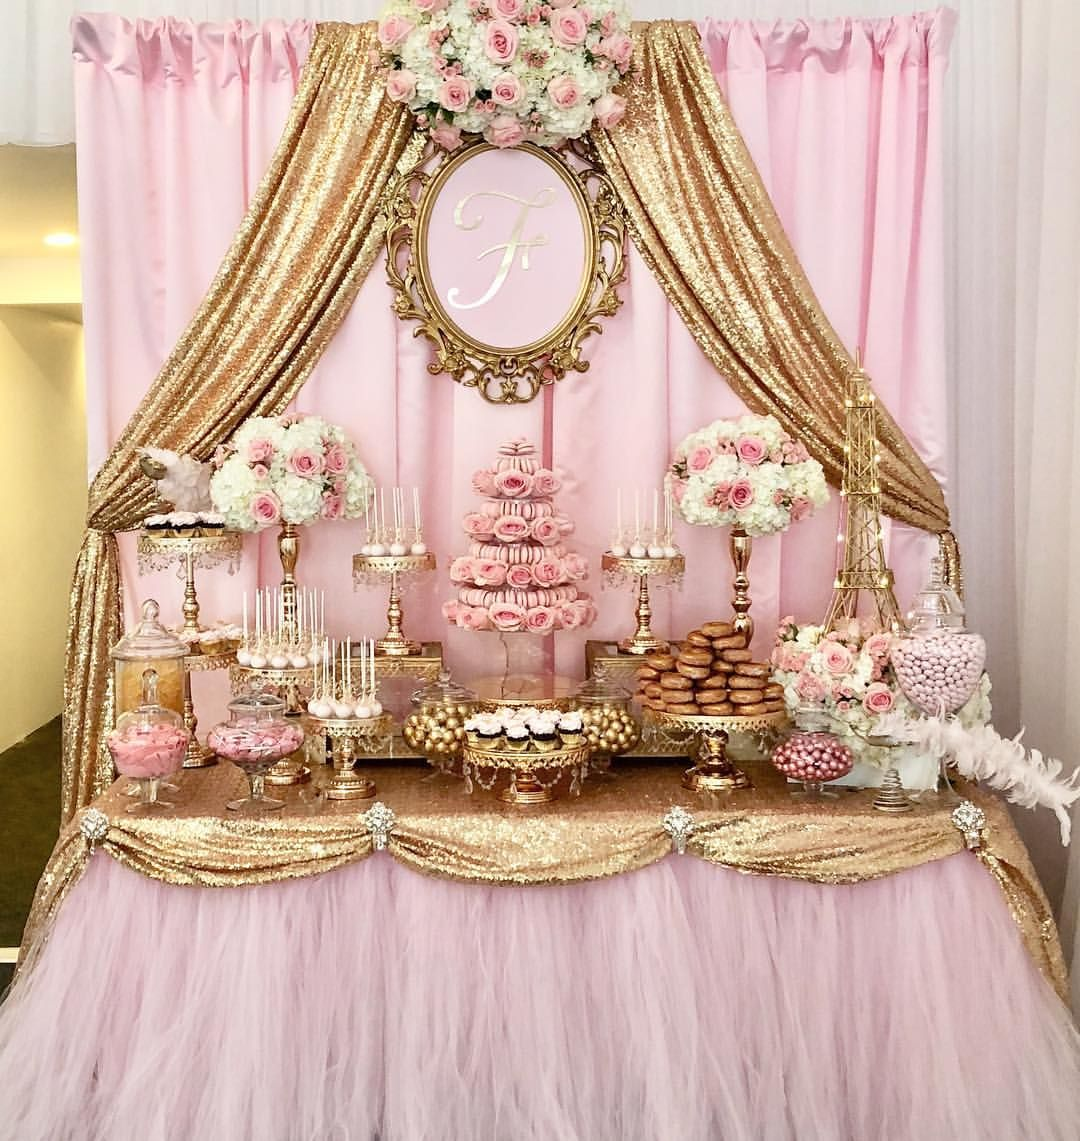 Paris theme Sweet 16 event at the Palace Banquet Hall in San Pedro by @kis.events. Candy Dessert Table by @bizziebeecreations and macaroons… #fiestade15años